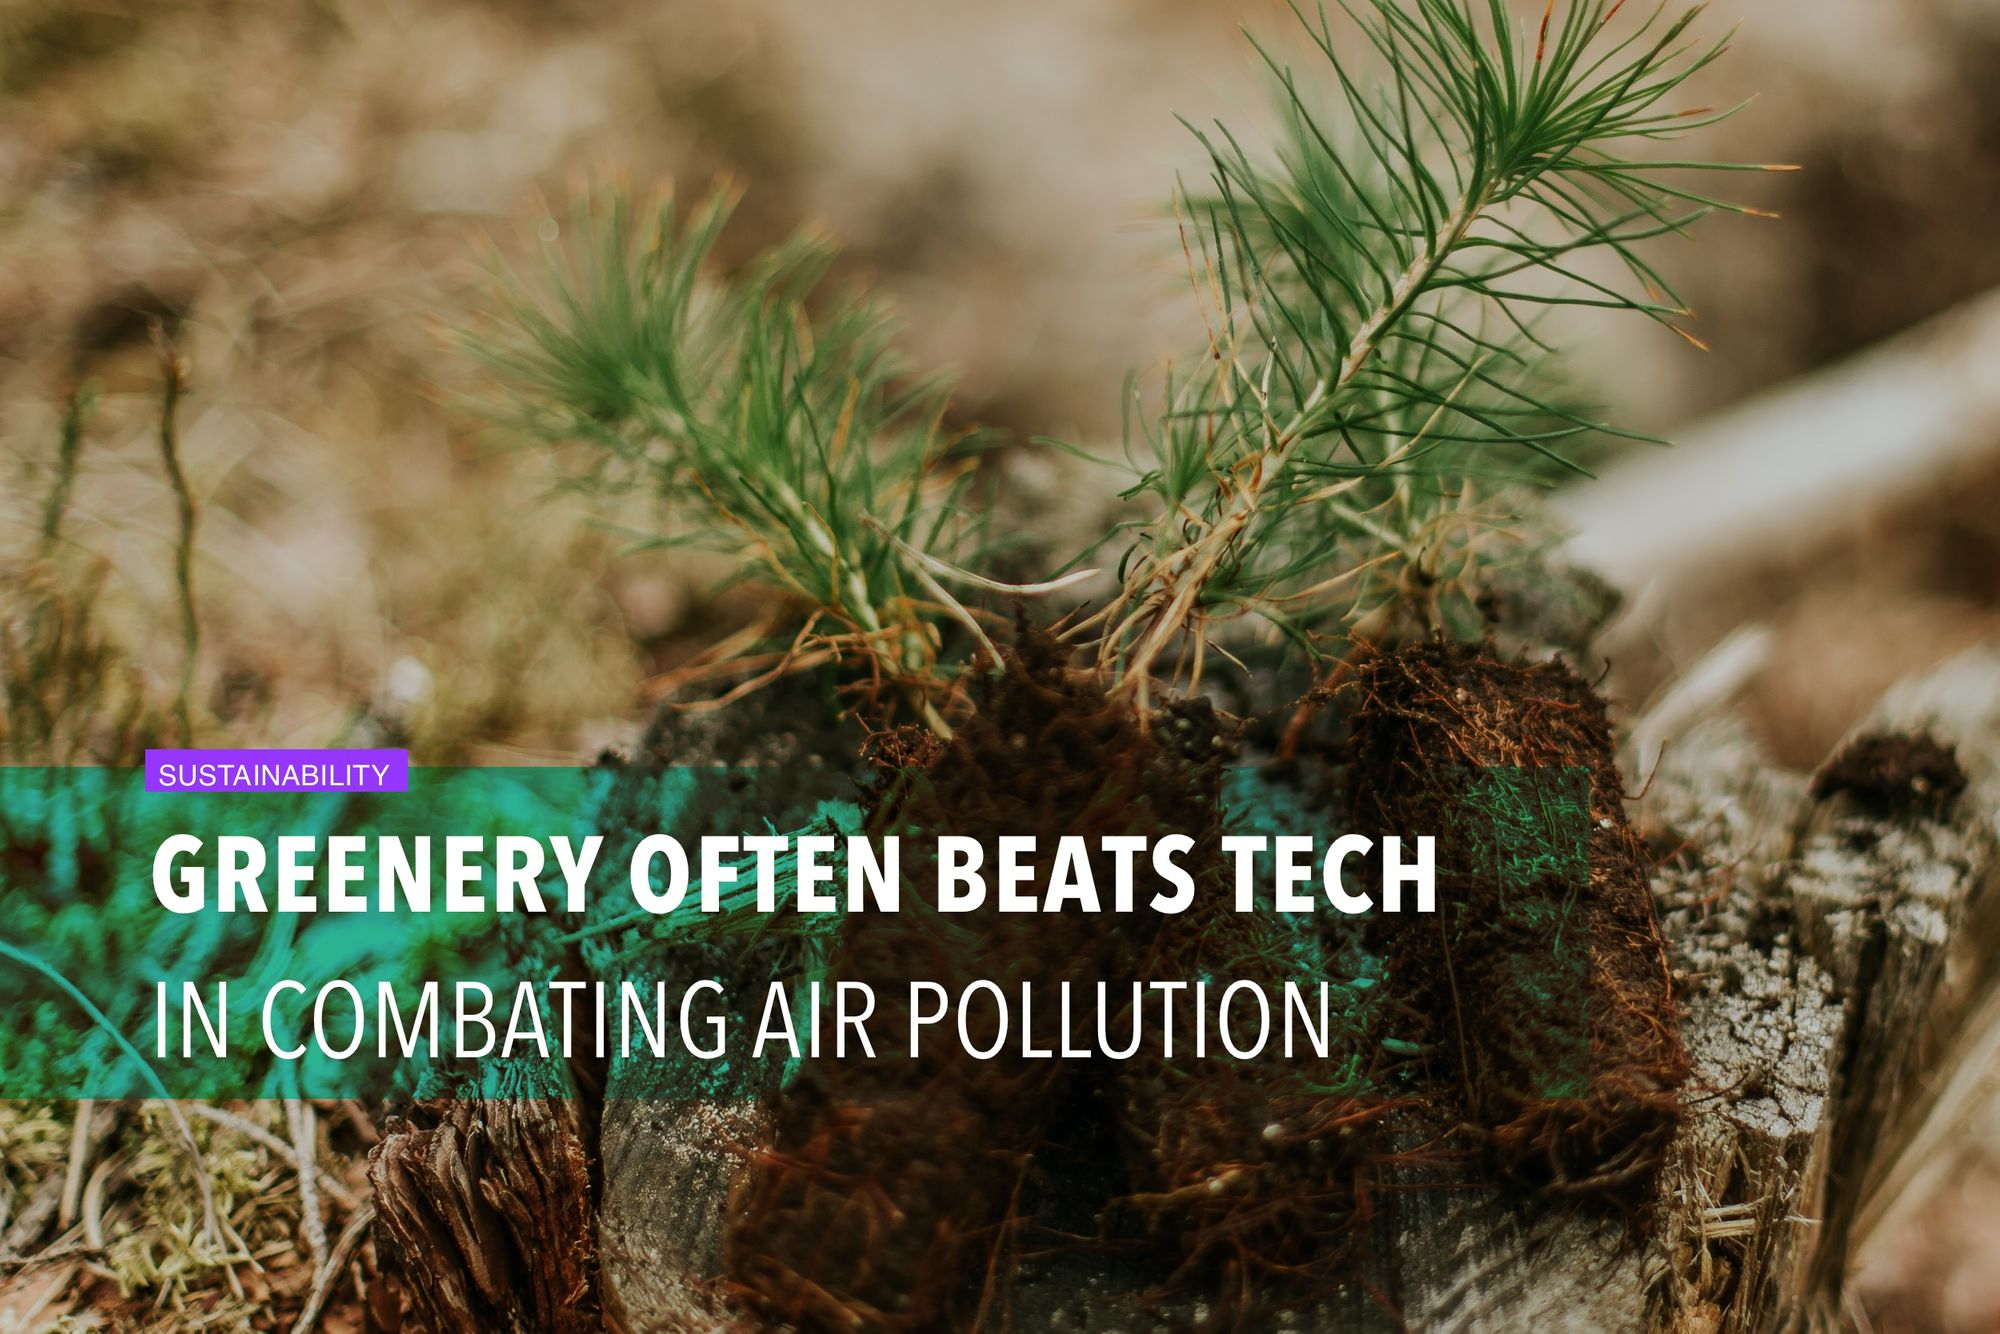 Greenery often beats tech in combating air pollution